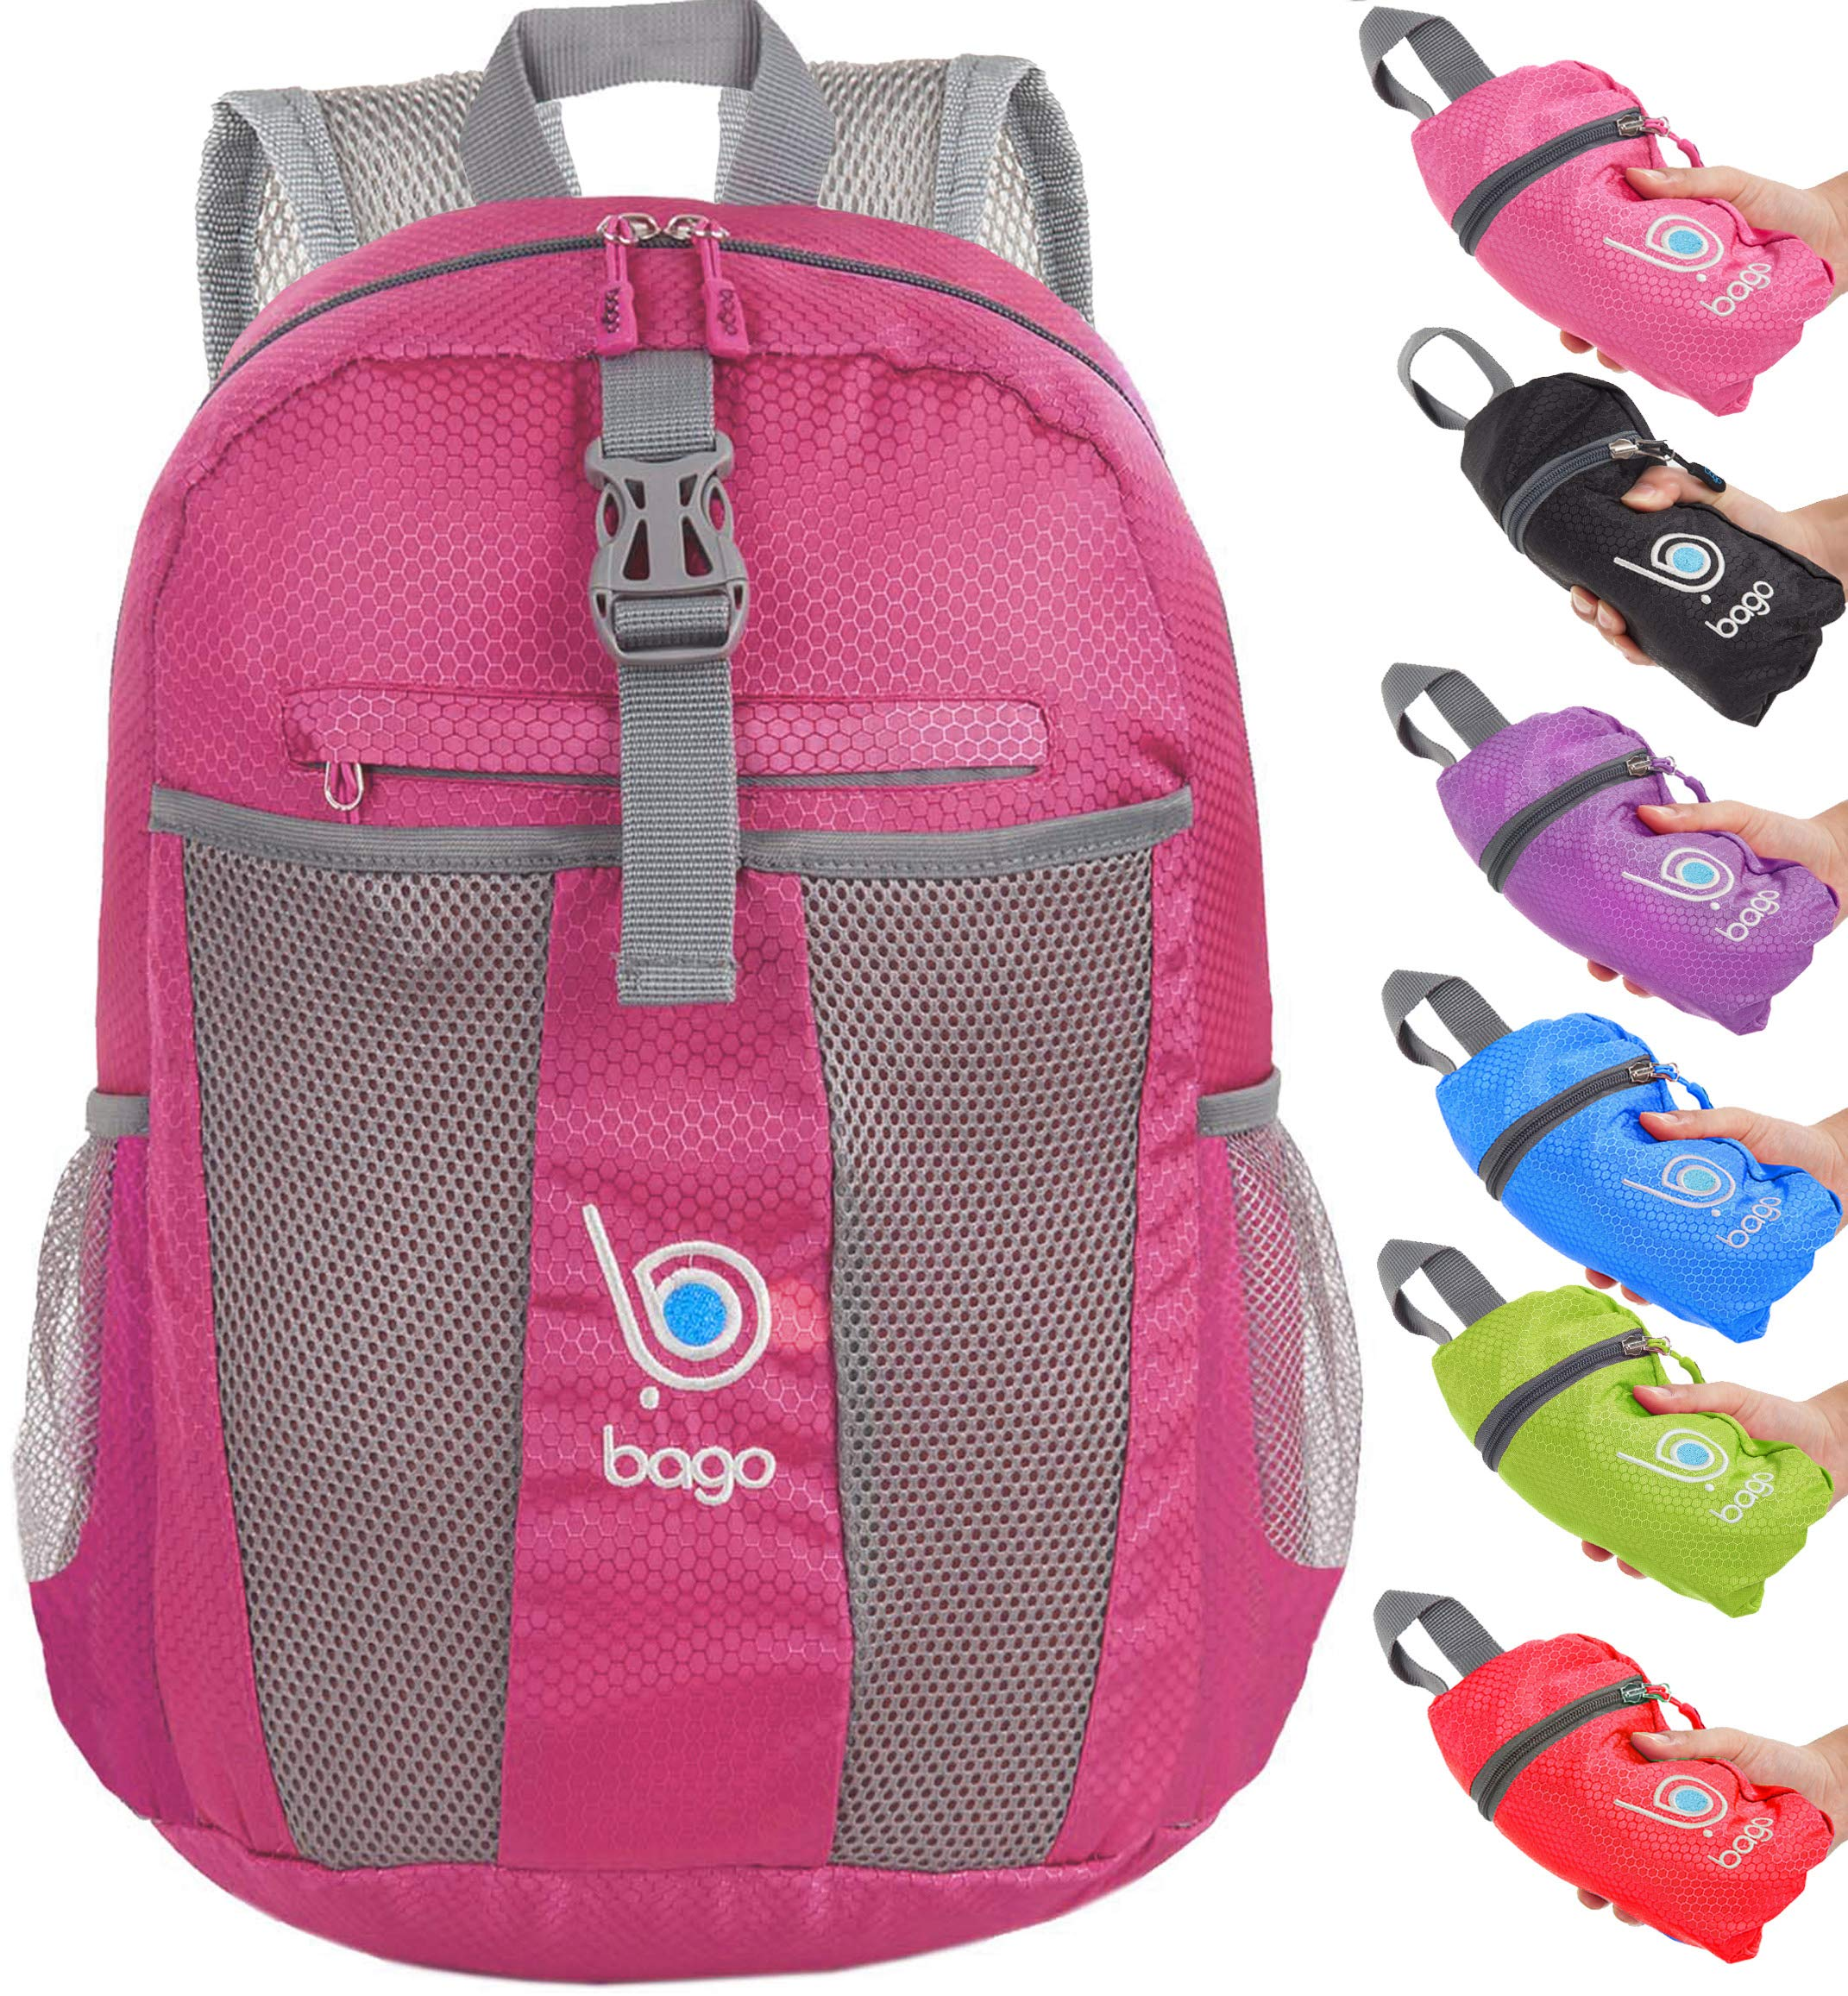 Bago Foldable Rucksack for Women and Men. Lightweight Water Resistant  Packable Backpack ad84050efaa40